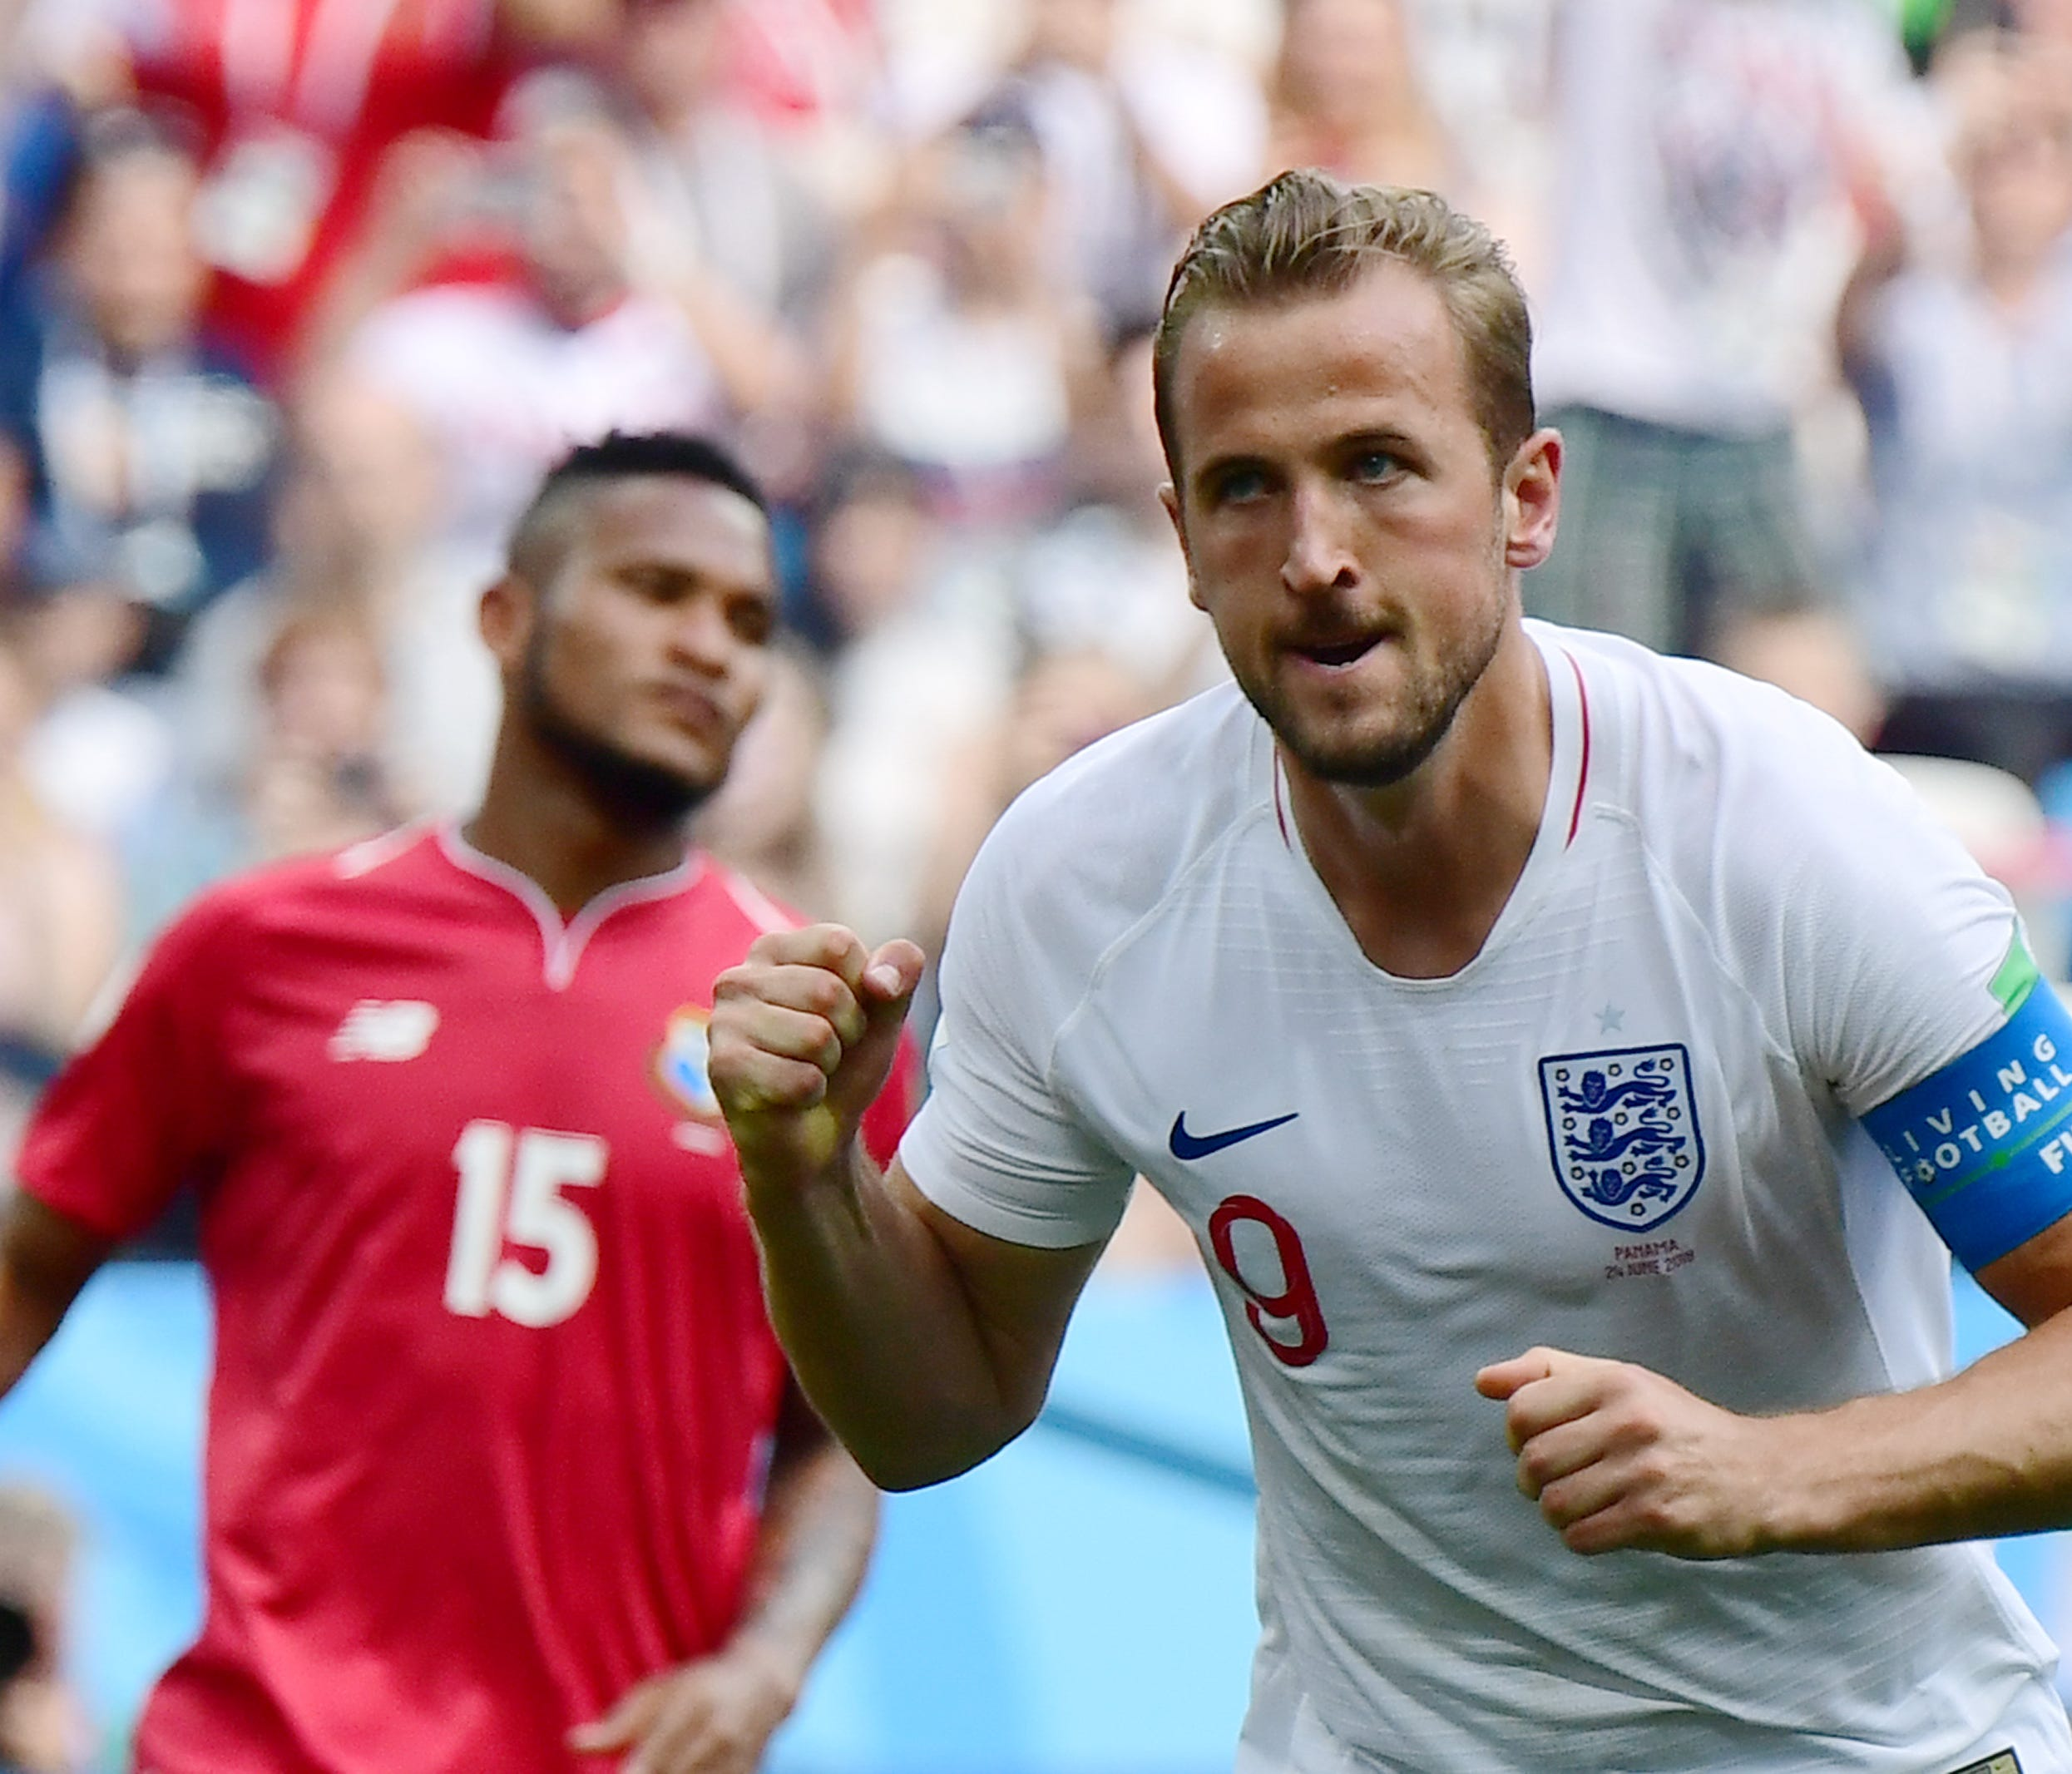 England's forward Harry Kane celebrates after scoring a penalty during the Russia 2018 World Cup Group G football match between England and Panama at the Nizhny Novgorod Stadium in Nizhny Novgorod on June 24, 2018. / AFP PHOTO / Martin BERNETTI / RES